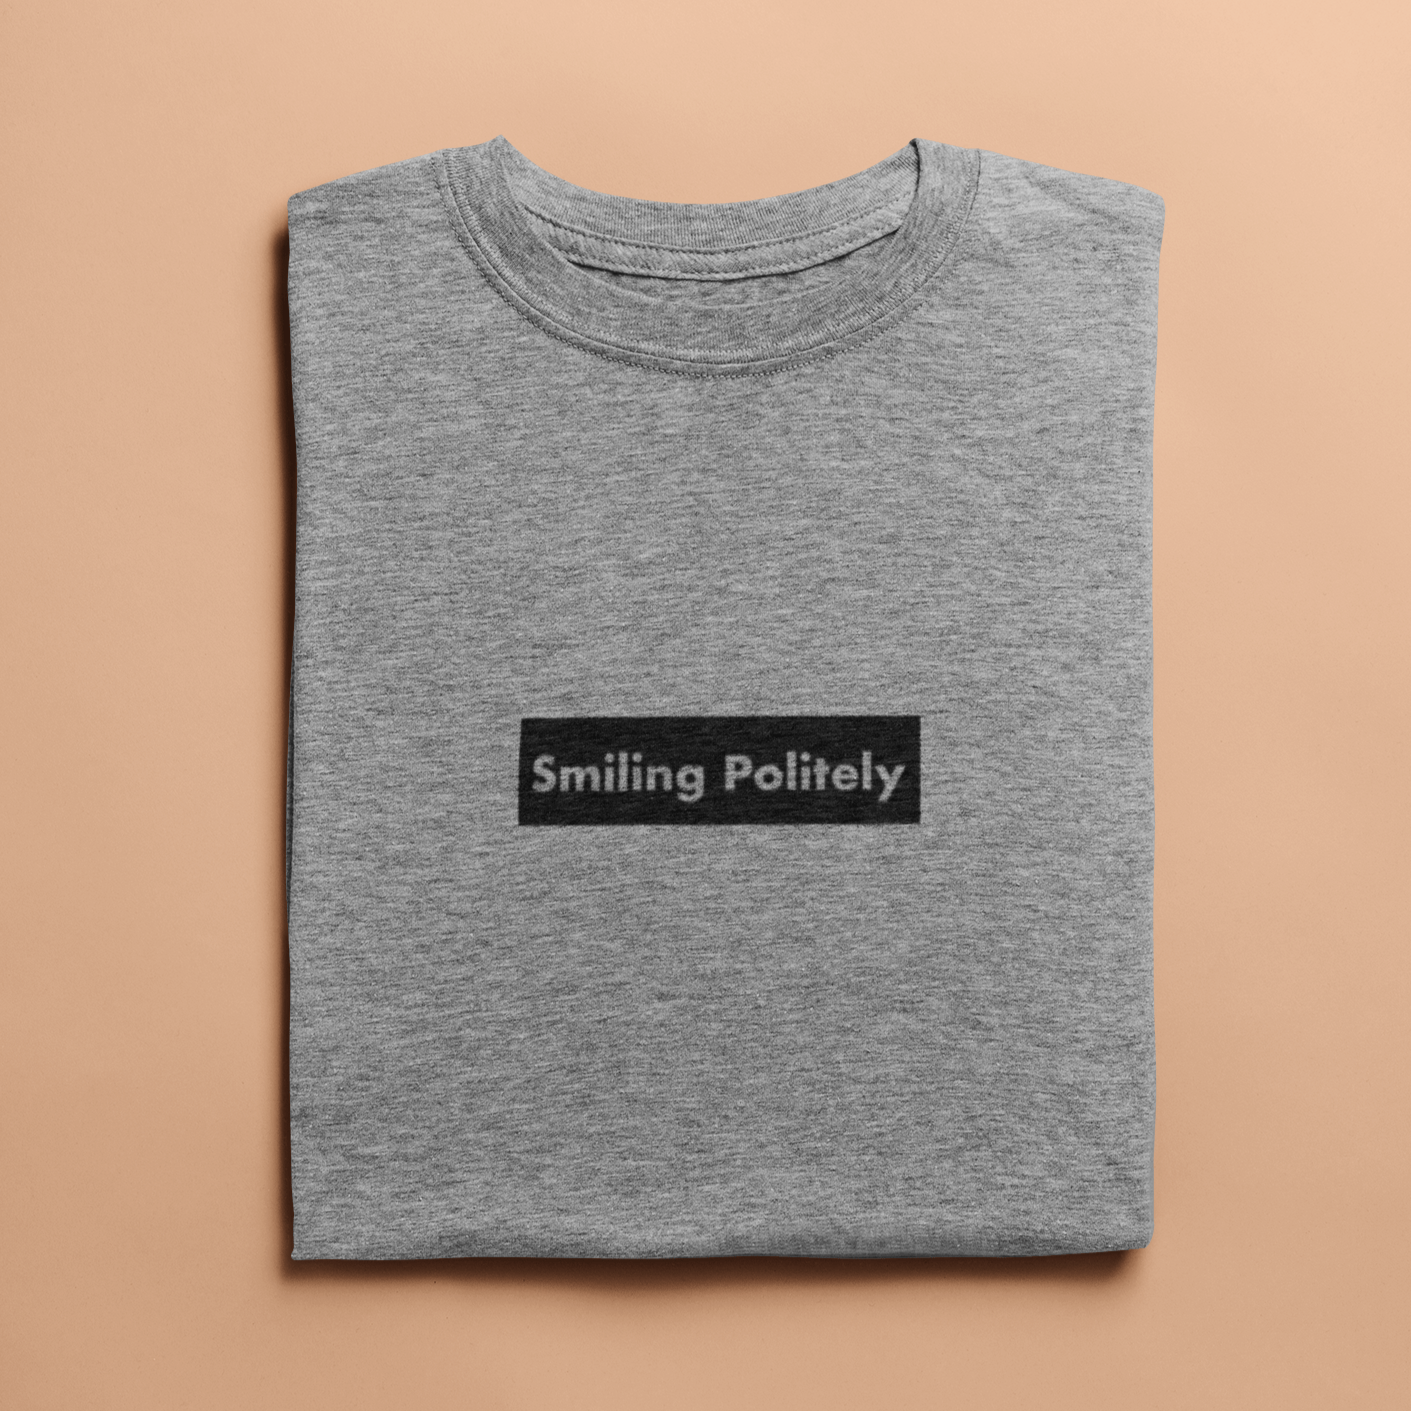 Smiling Politely Tee - Unforgettable Luncheon